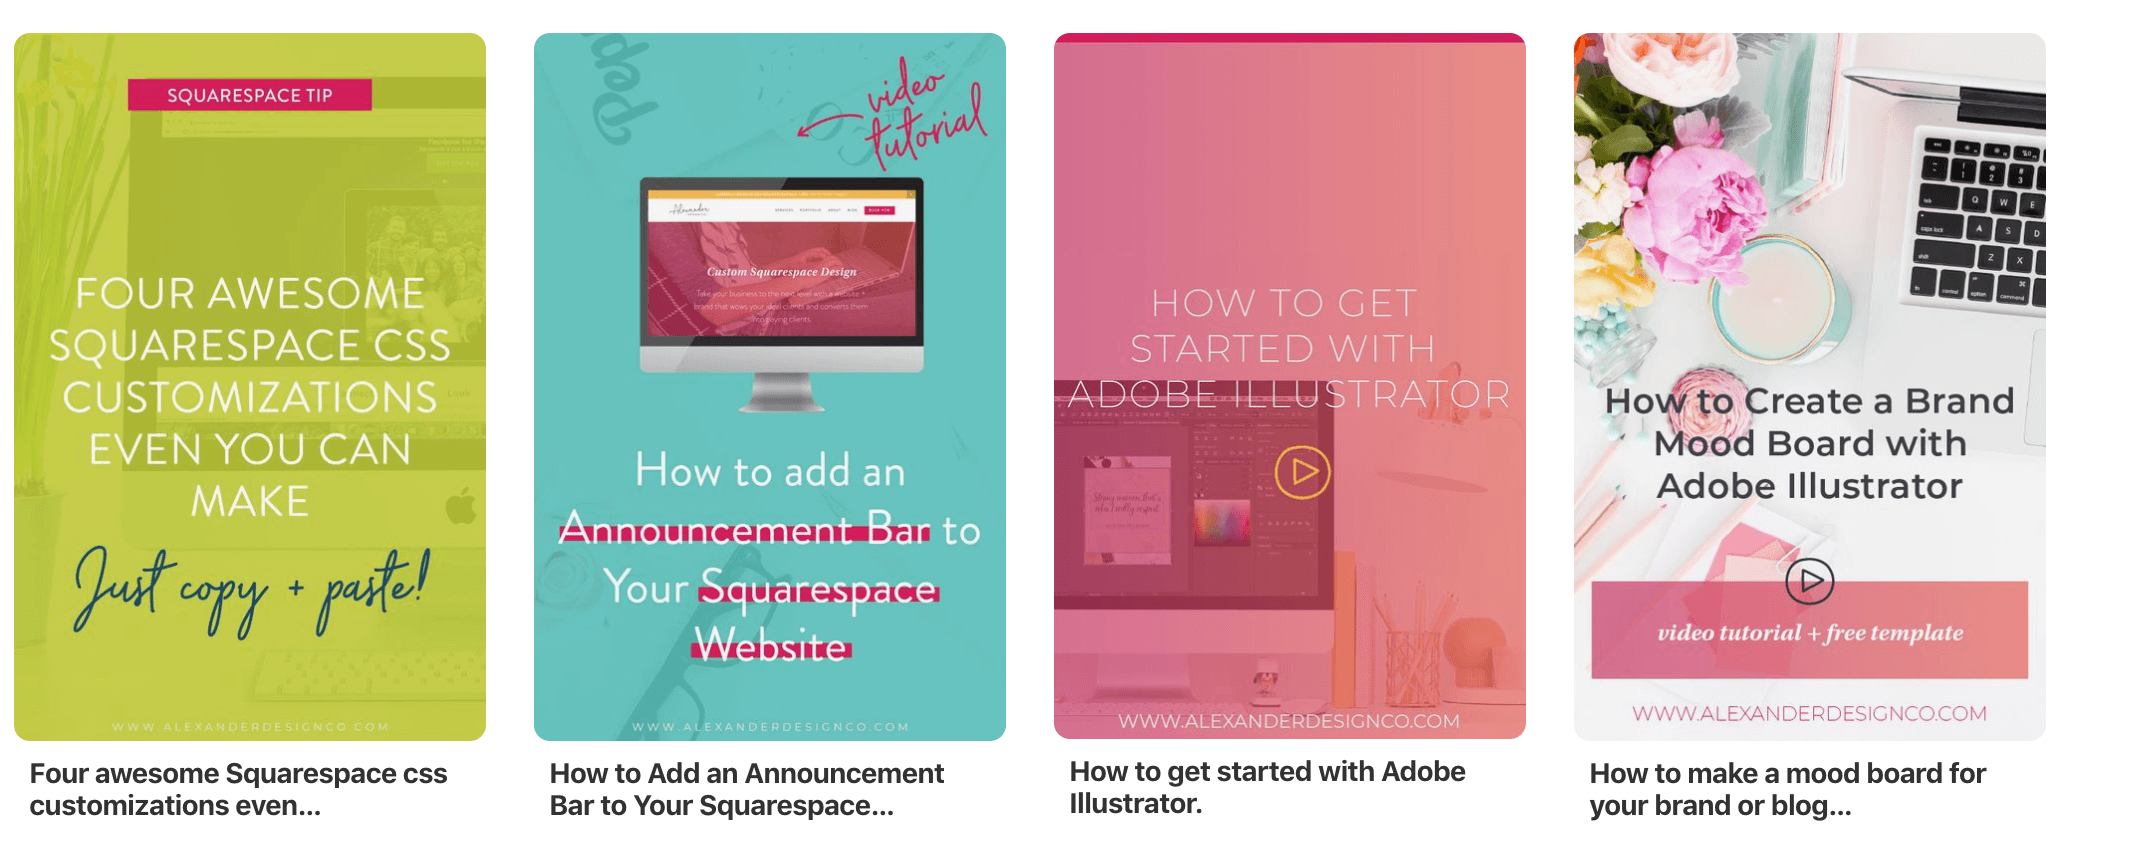 How To Make Your Squarespace Website Pinterest Friendly.png